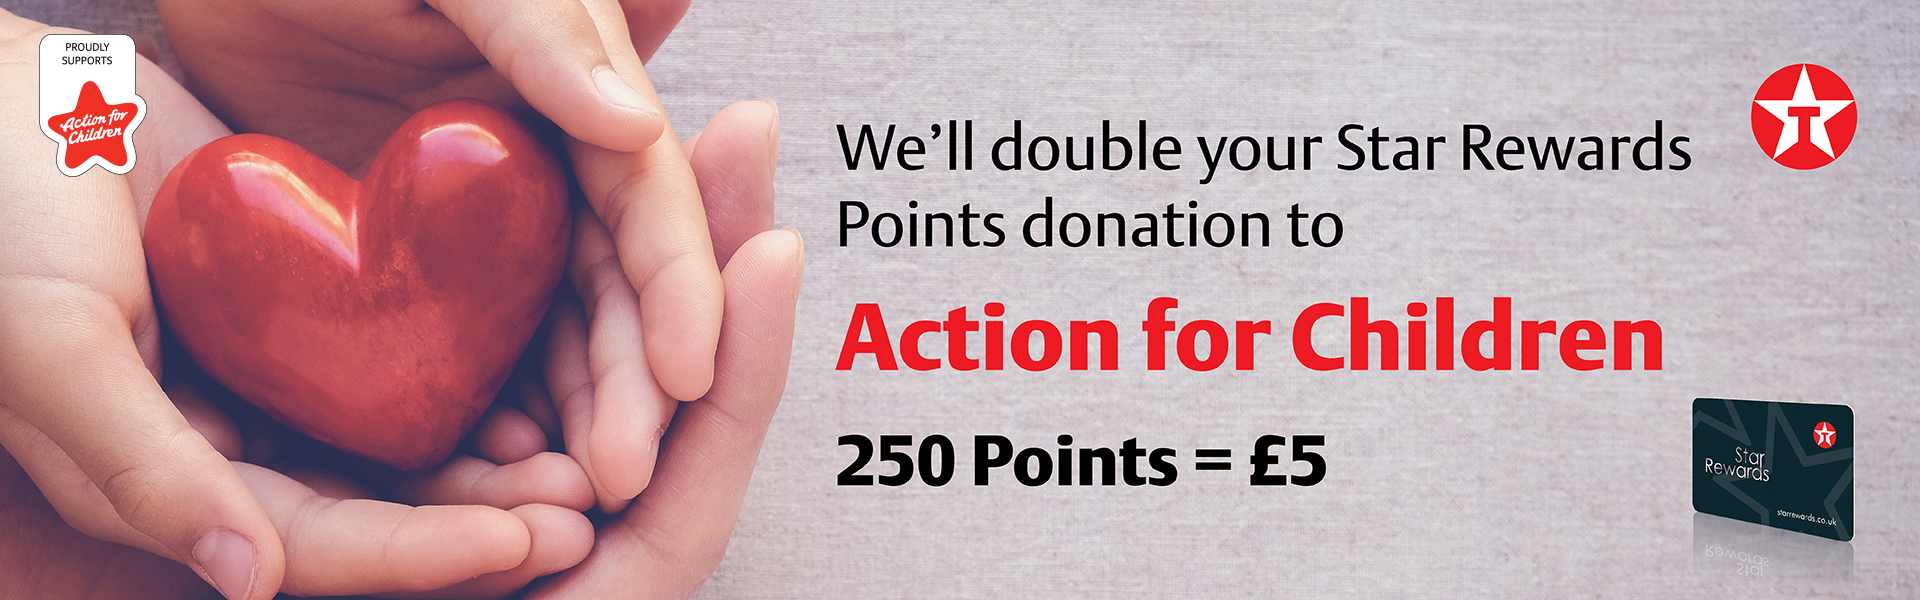 Donate Points to Action for Children